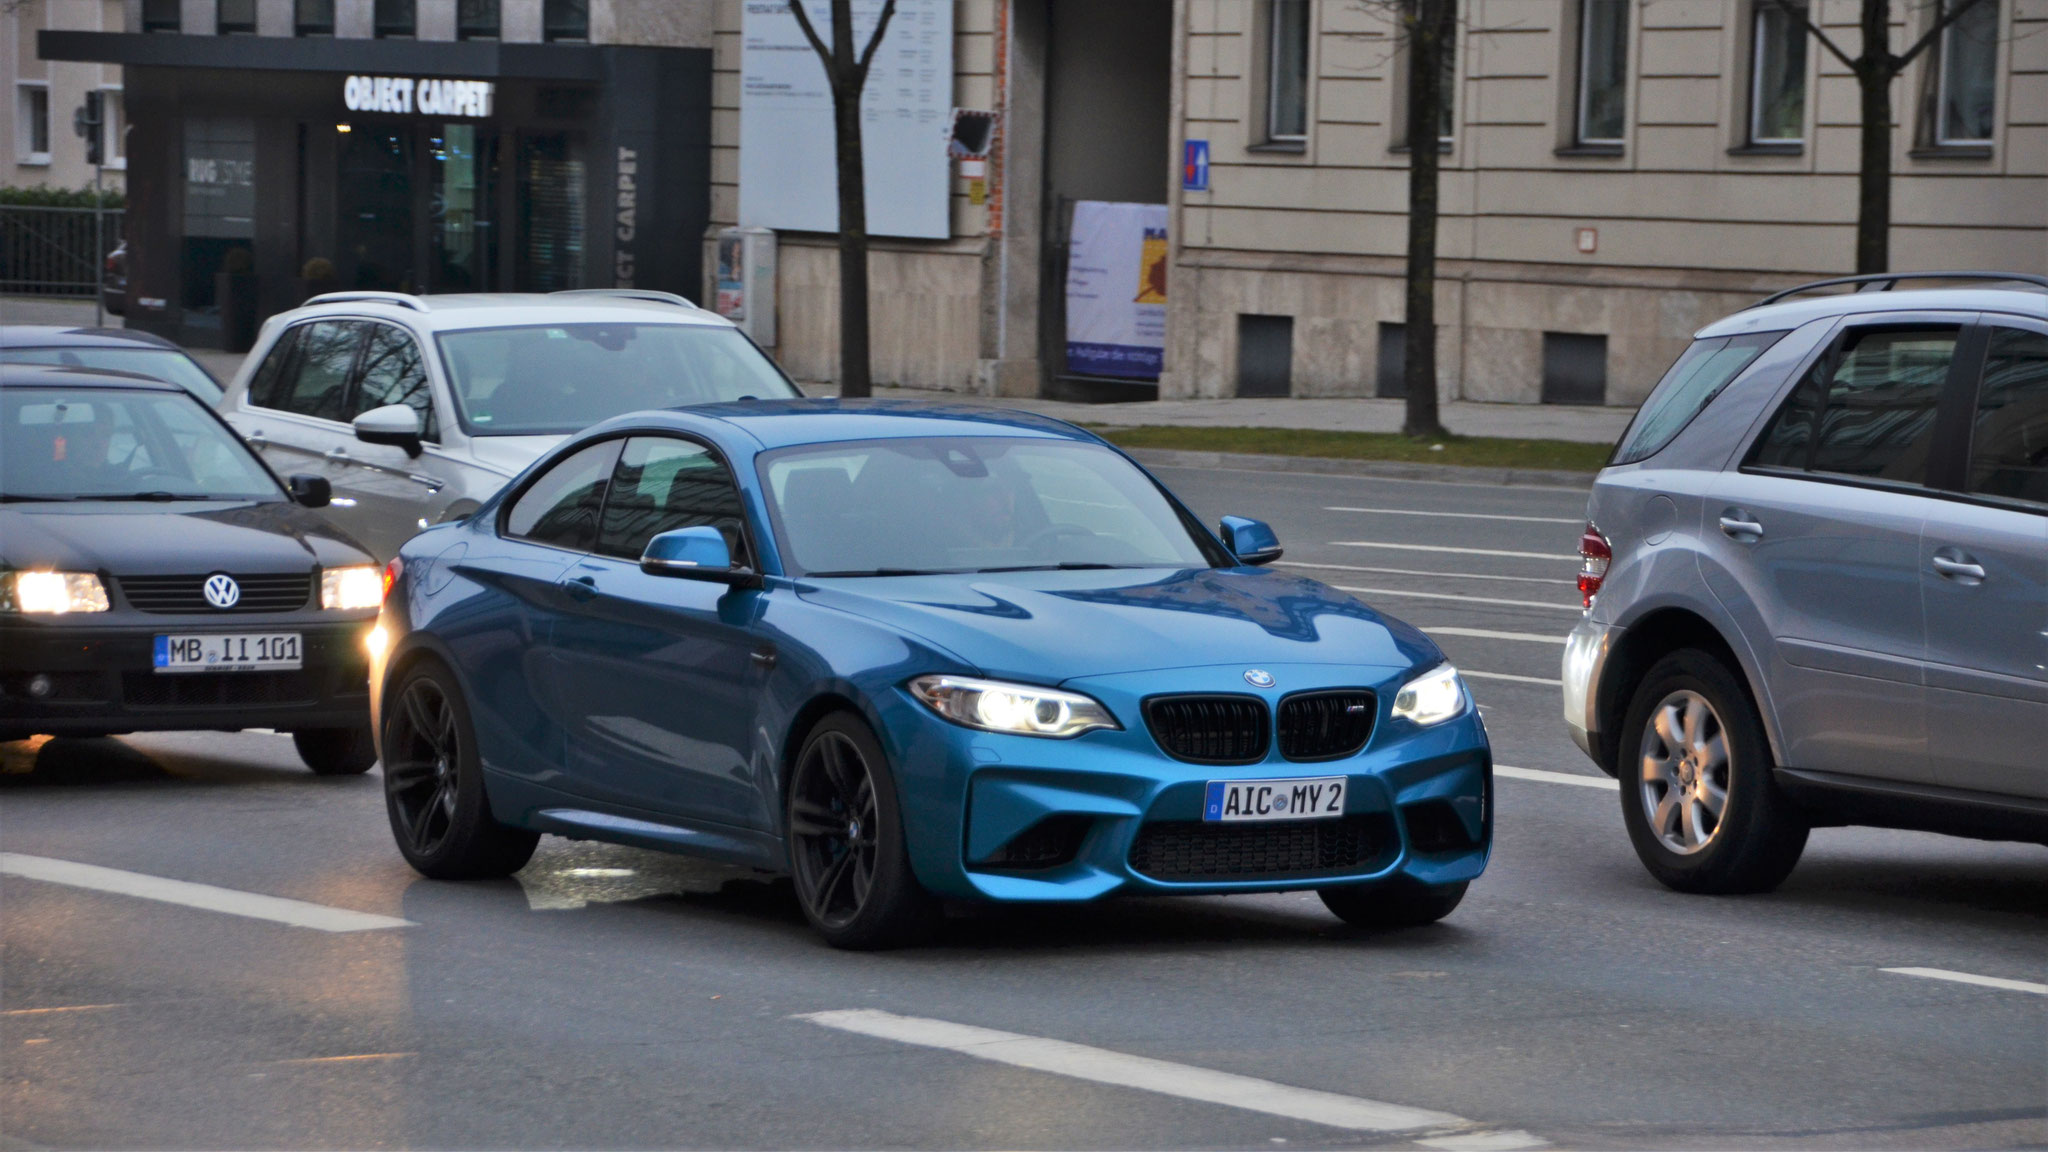 BMW M2 - AIC-MY-2